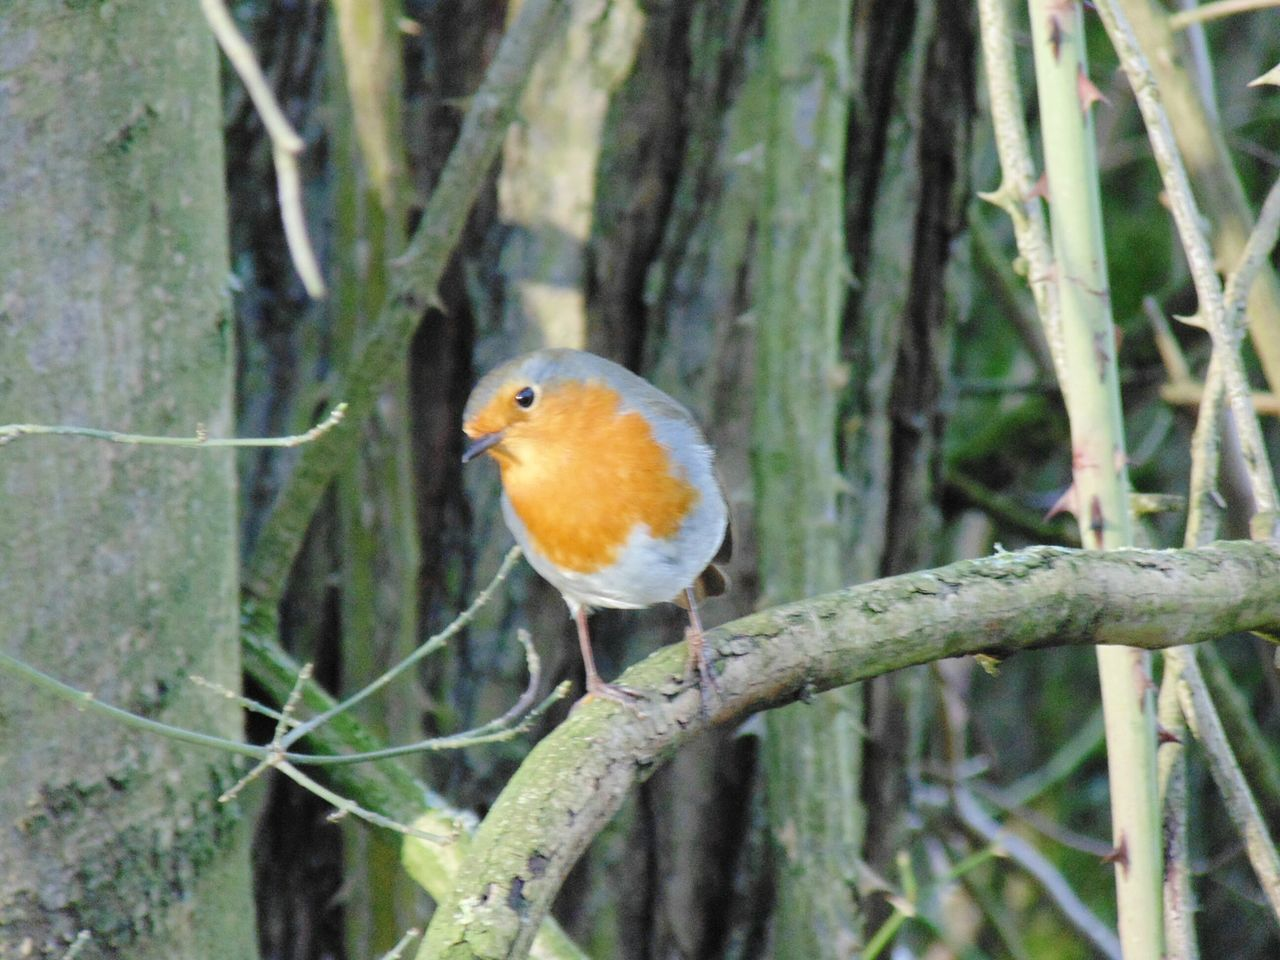 Robin Redbreast One Animal Bird Animal Themes Perching Focus On Foreground Animals In The Wild Nature Robin Tree Branch Animal Wildlife Day No People Outdoors Beauty In Nature Kingfisher